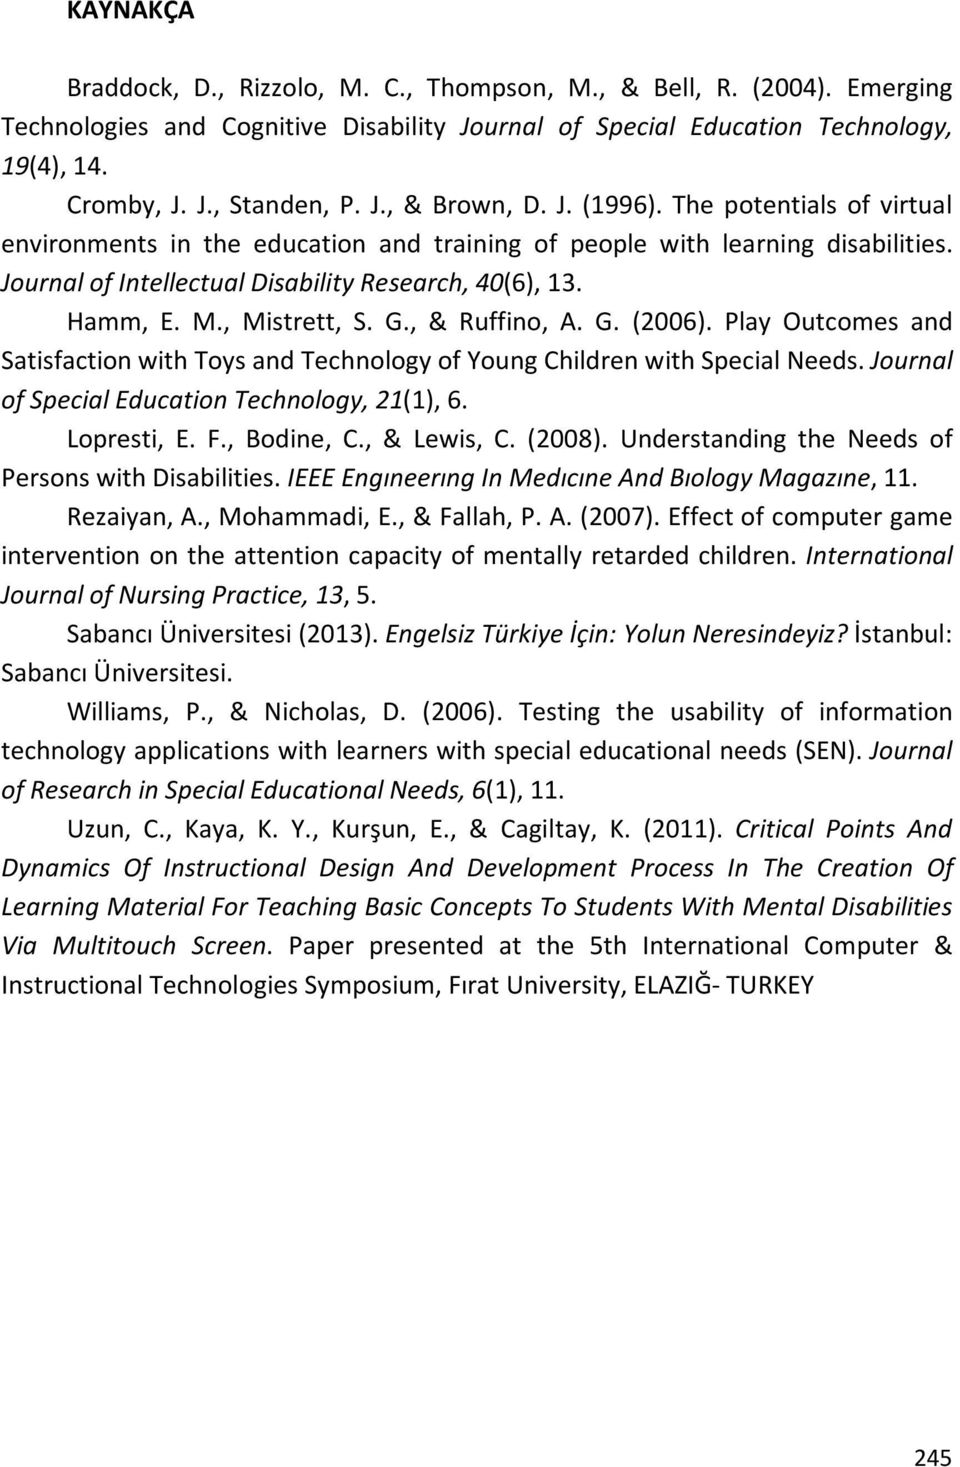 G., & Ruffino, A. G. (2006). Play Outcomes and Satisfaction with Toys and Technology of Young Children with Special Needs. Journal of Special Education Technology, 21(1), 6. Lopresti, E. F.